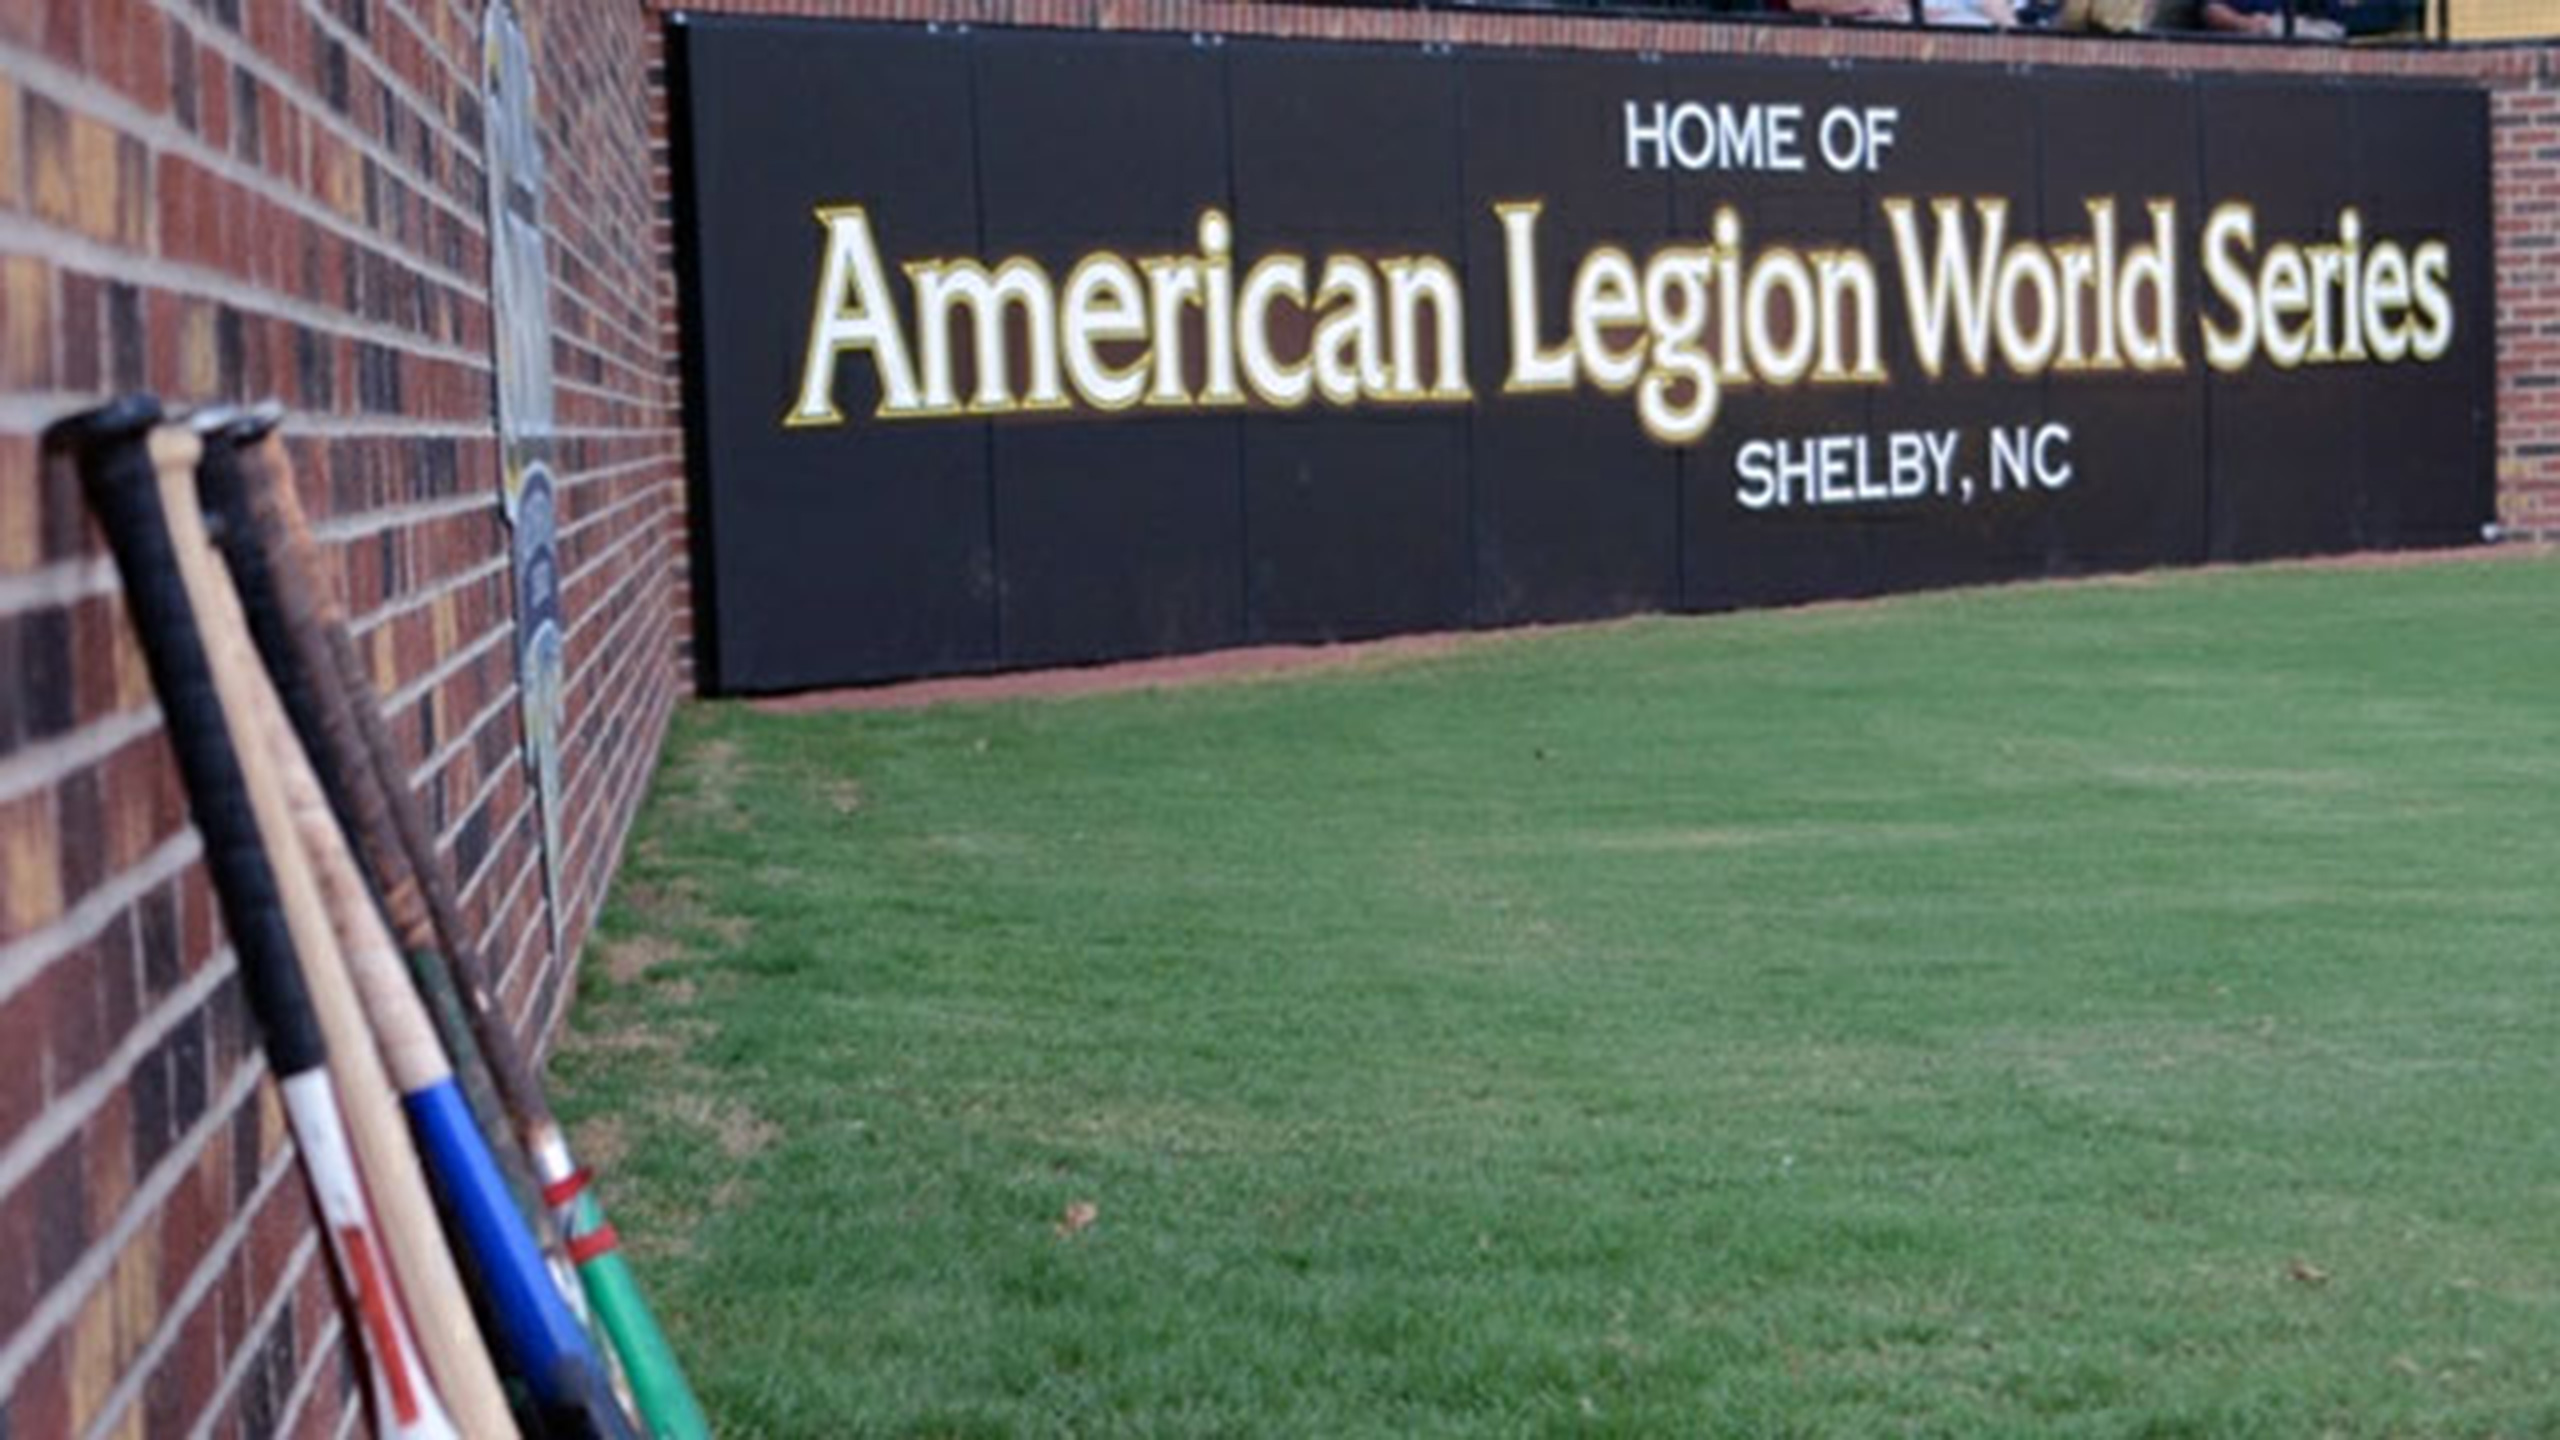 Great Lakes vs. Western (American Legion) (re-air)